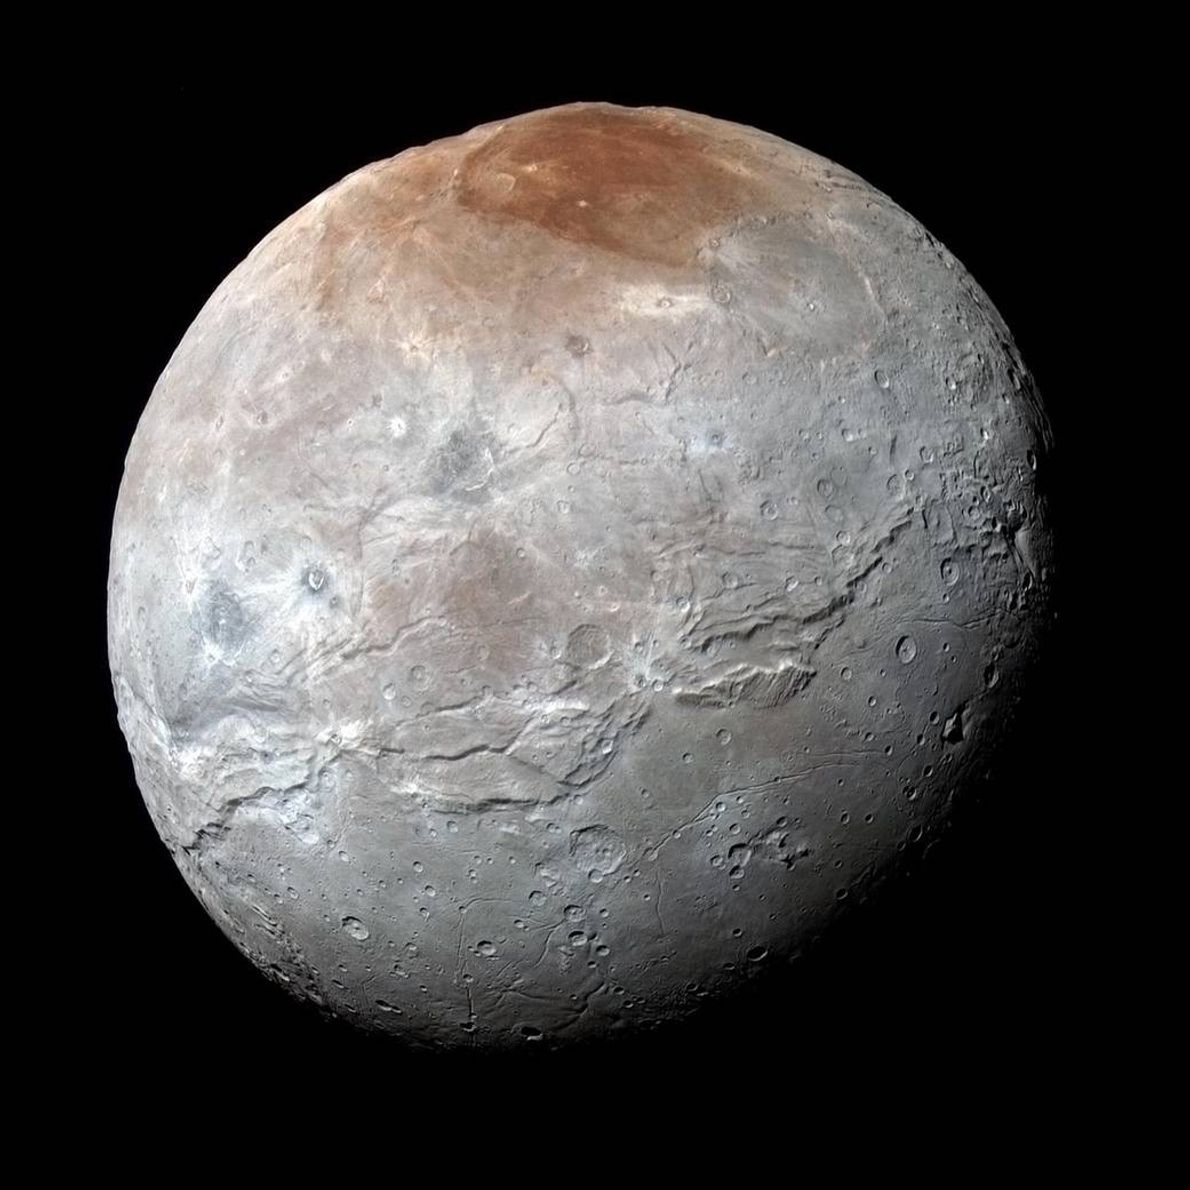 Pluto's largest moon Charon, seen here in an enhanced color image from New Horizons, has a ...